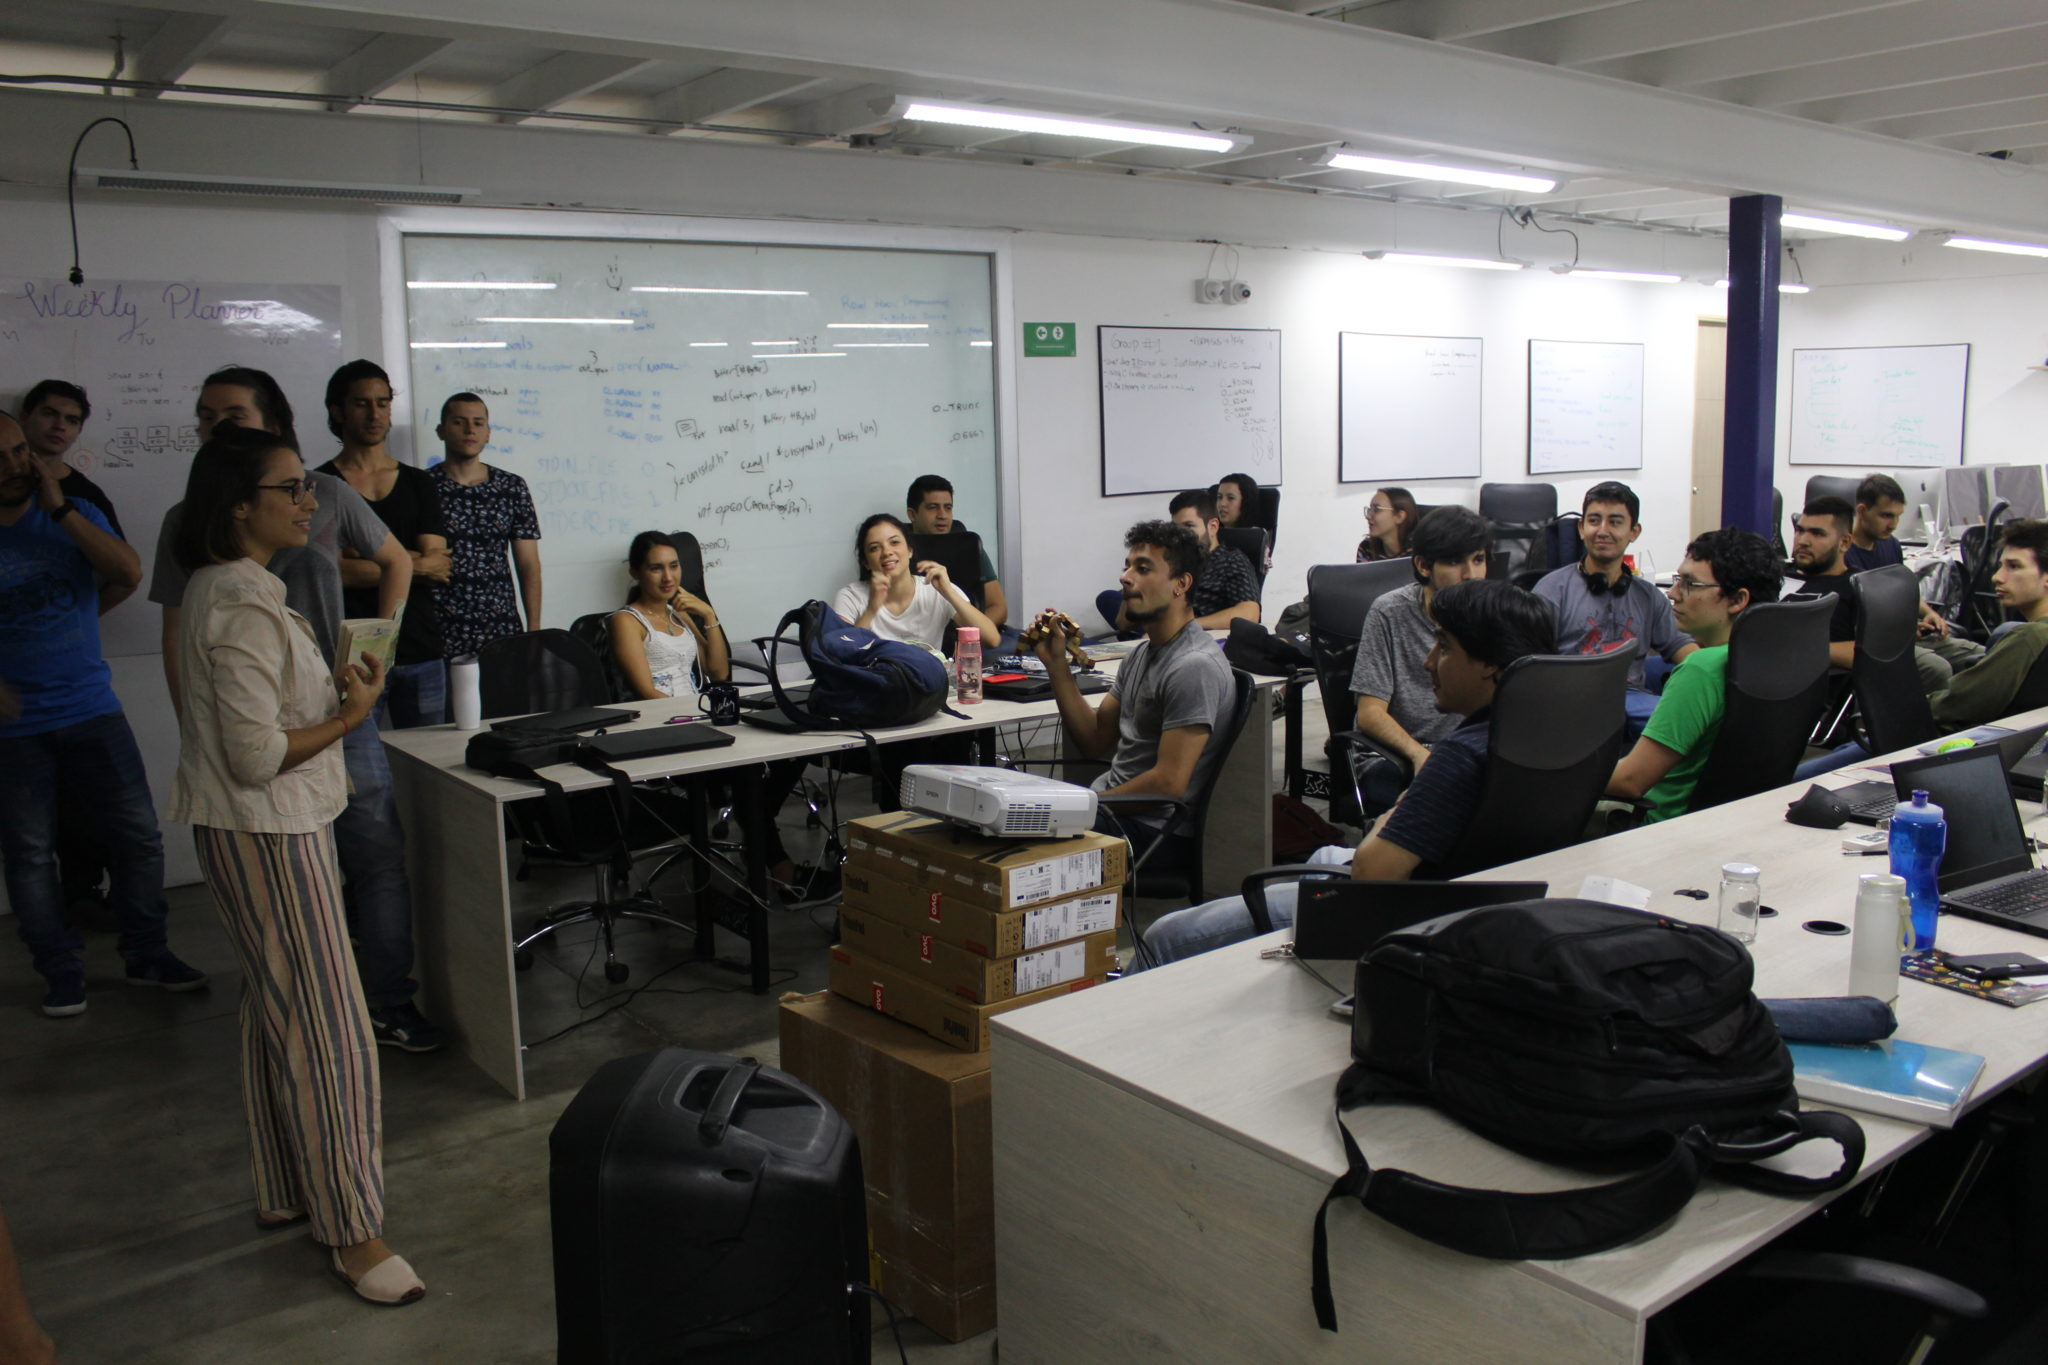 Holberton School Medellín: Training the next generation of software engineers